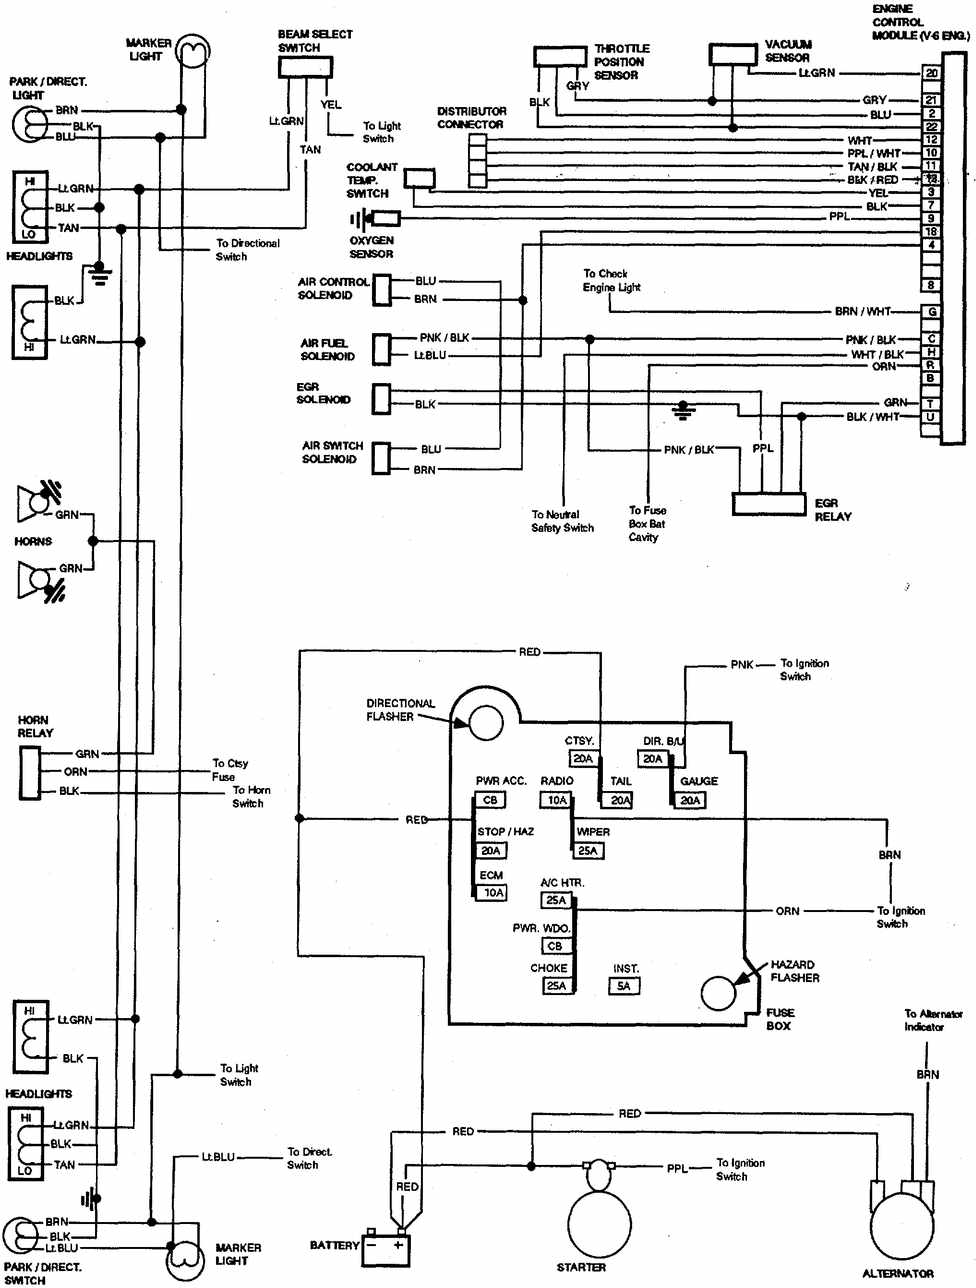 Chevrolet V Trucks Electrical Wiring Diagram on 89 Mustang Radio Wiring Diagram